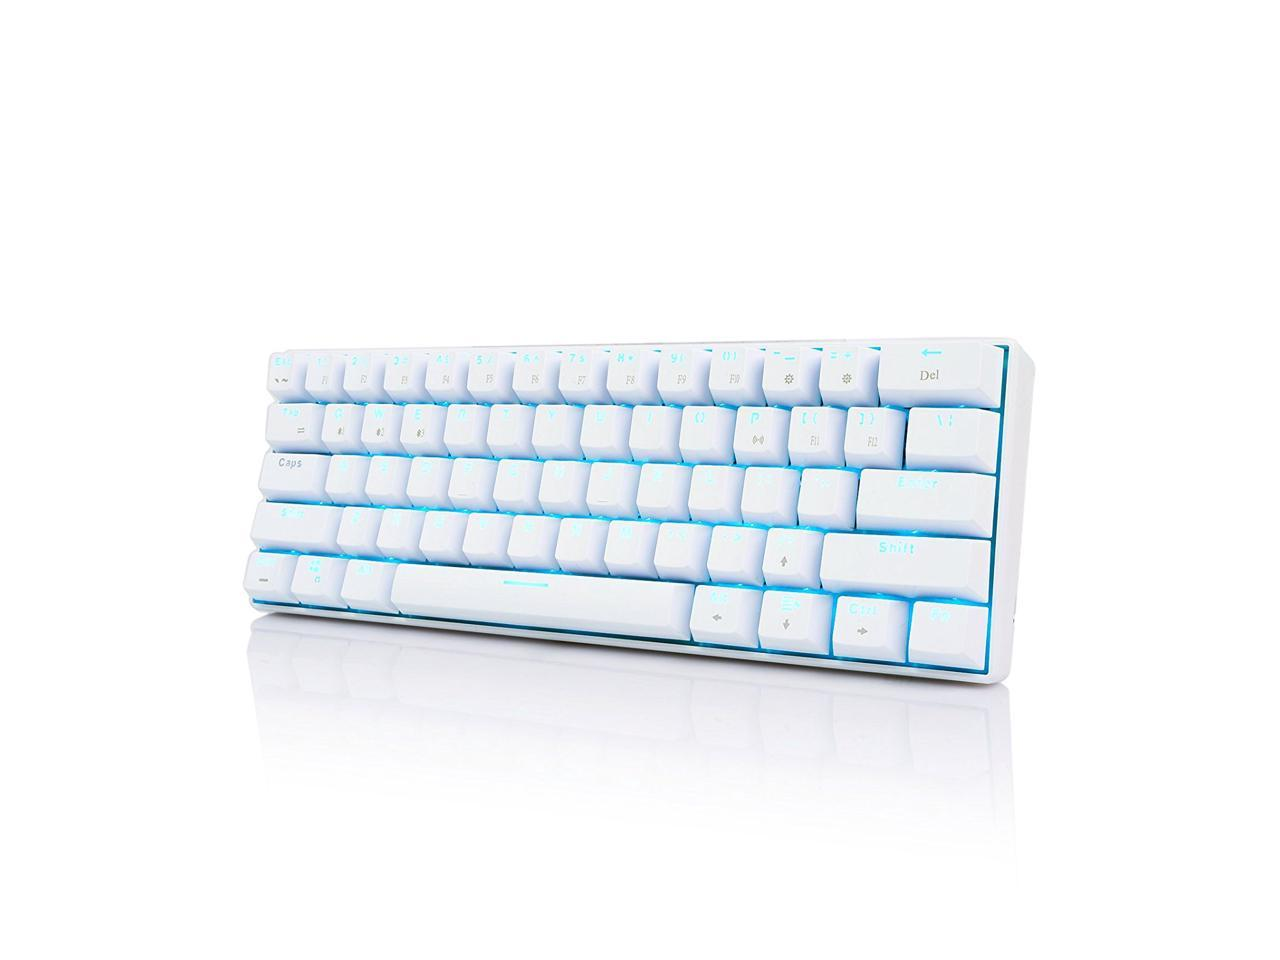 Royal Kludge Rk61 Cherry Mechanical Bluetooth 3 0 Wired Wireless 61 Keys Multi Device Led Backlit Gaming Office Keyboard For Ios Android Windows And Mac With Rechargeable Battery Brown Switch White Newegg Com